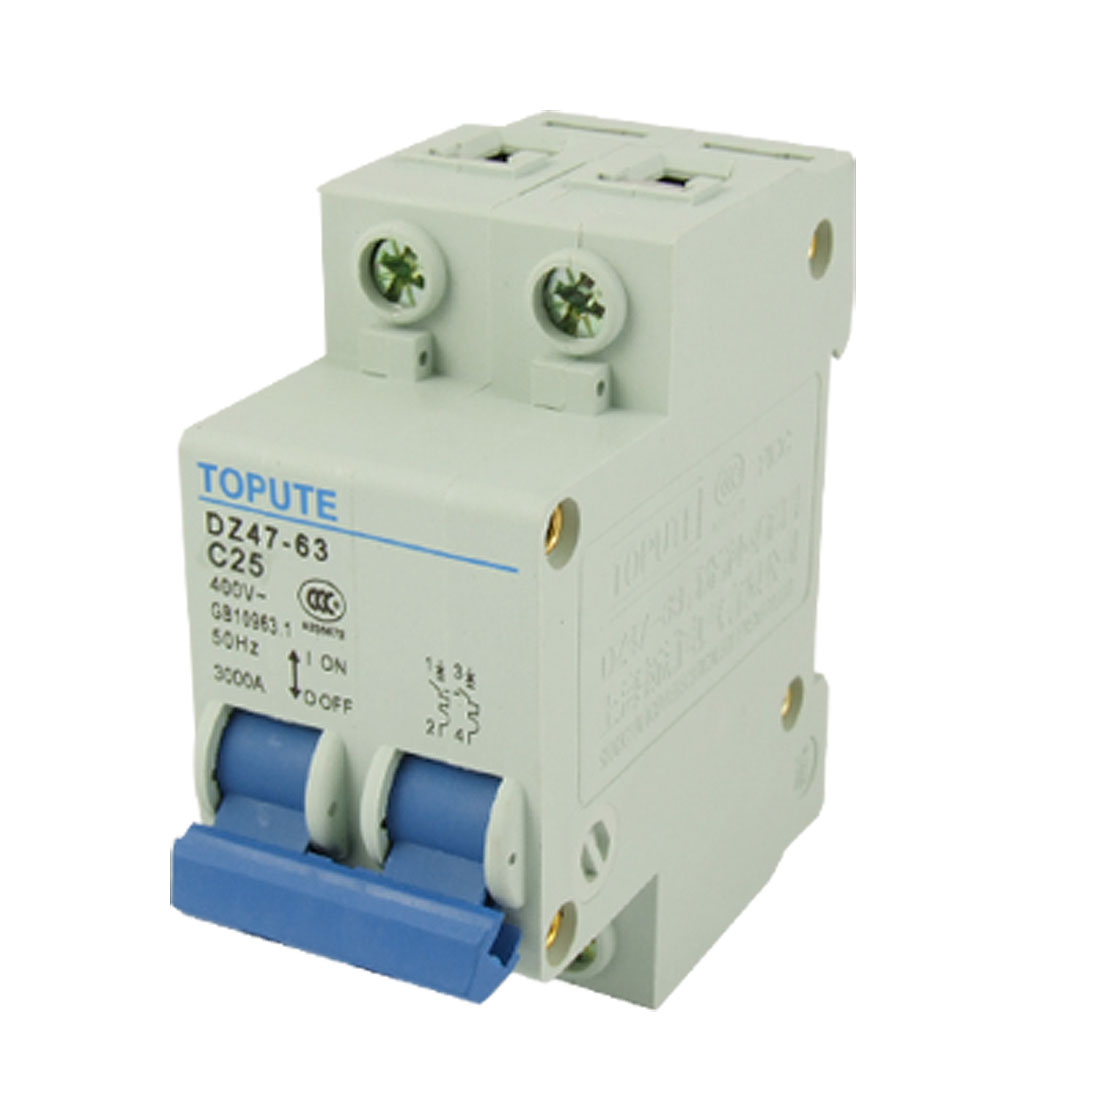 3000A Breaking Capacity 25A Rated Current Double Pole MCB Mini Circuit Breaker